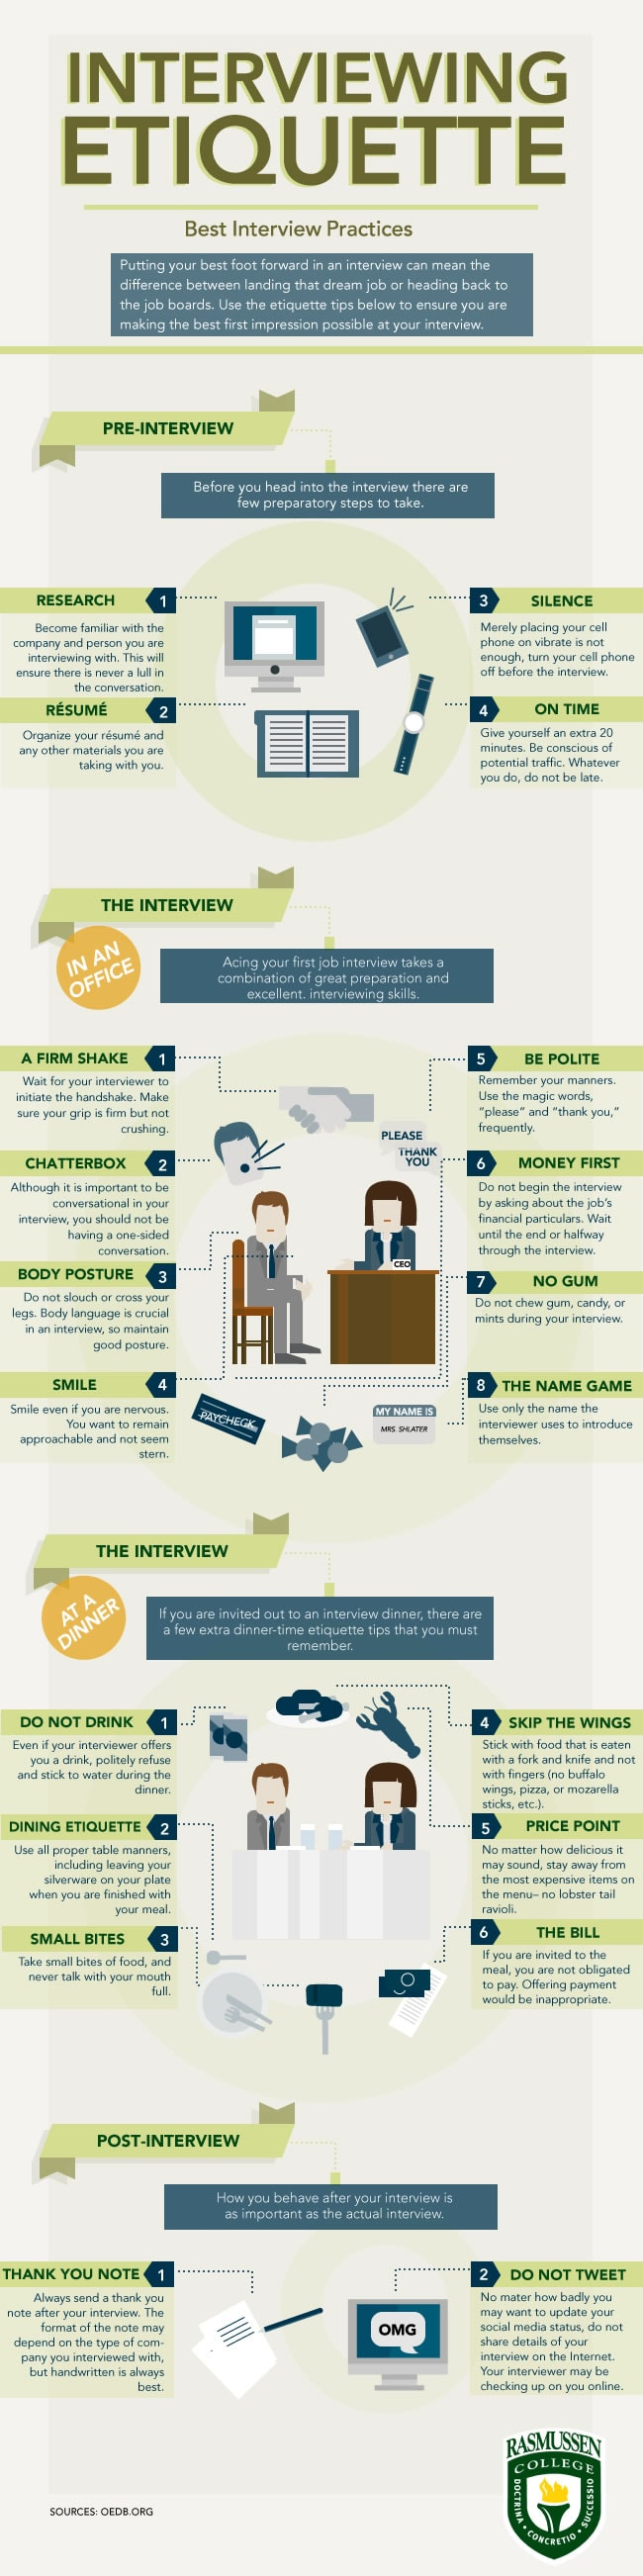 Interview Etiquette Guide